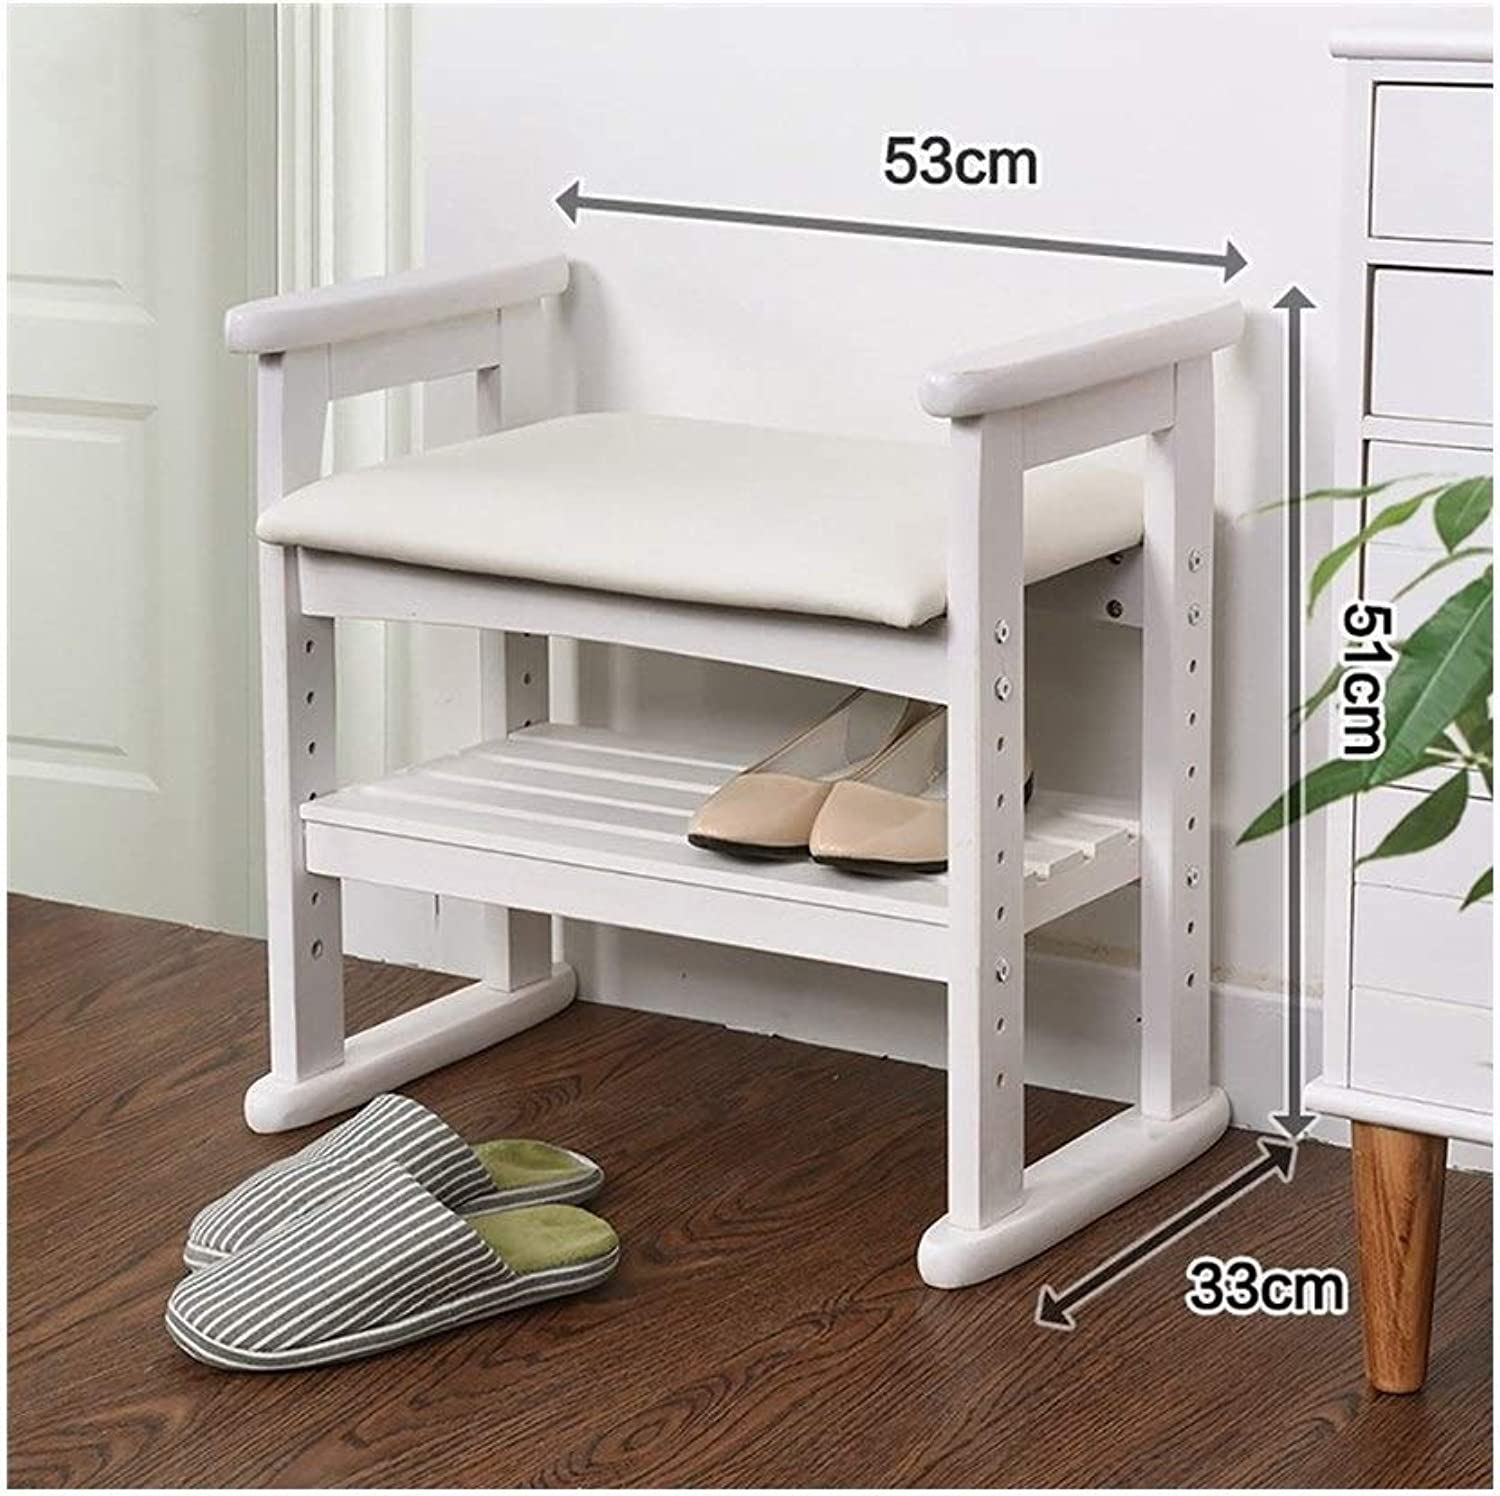 2-Story shoes Bench with Cushions Living Room shoes Rack Adjustable Corridor Stool (color   White, Size   53  33  51cm)